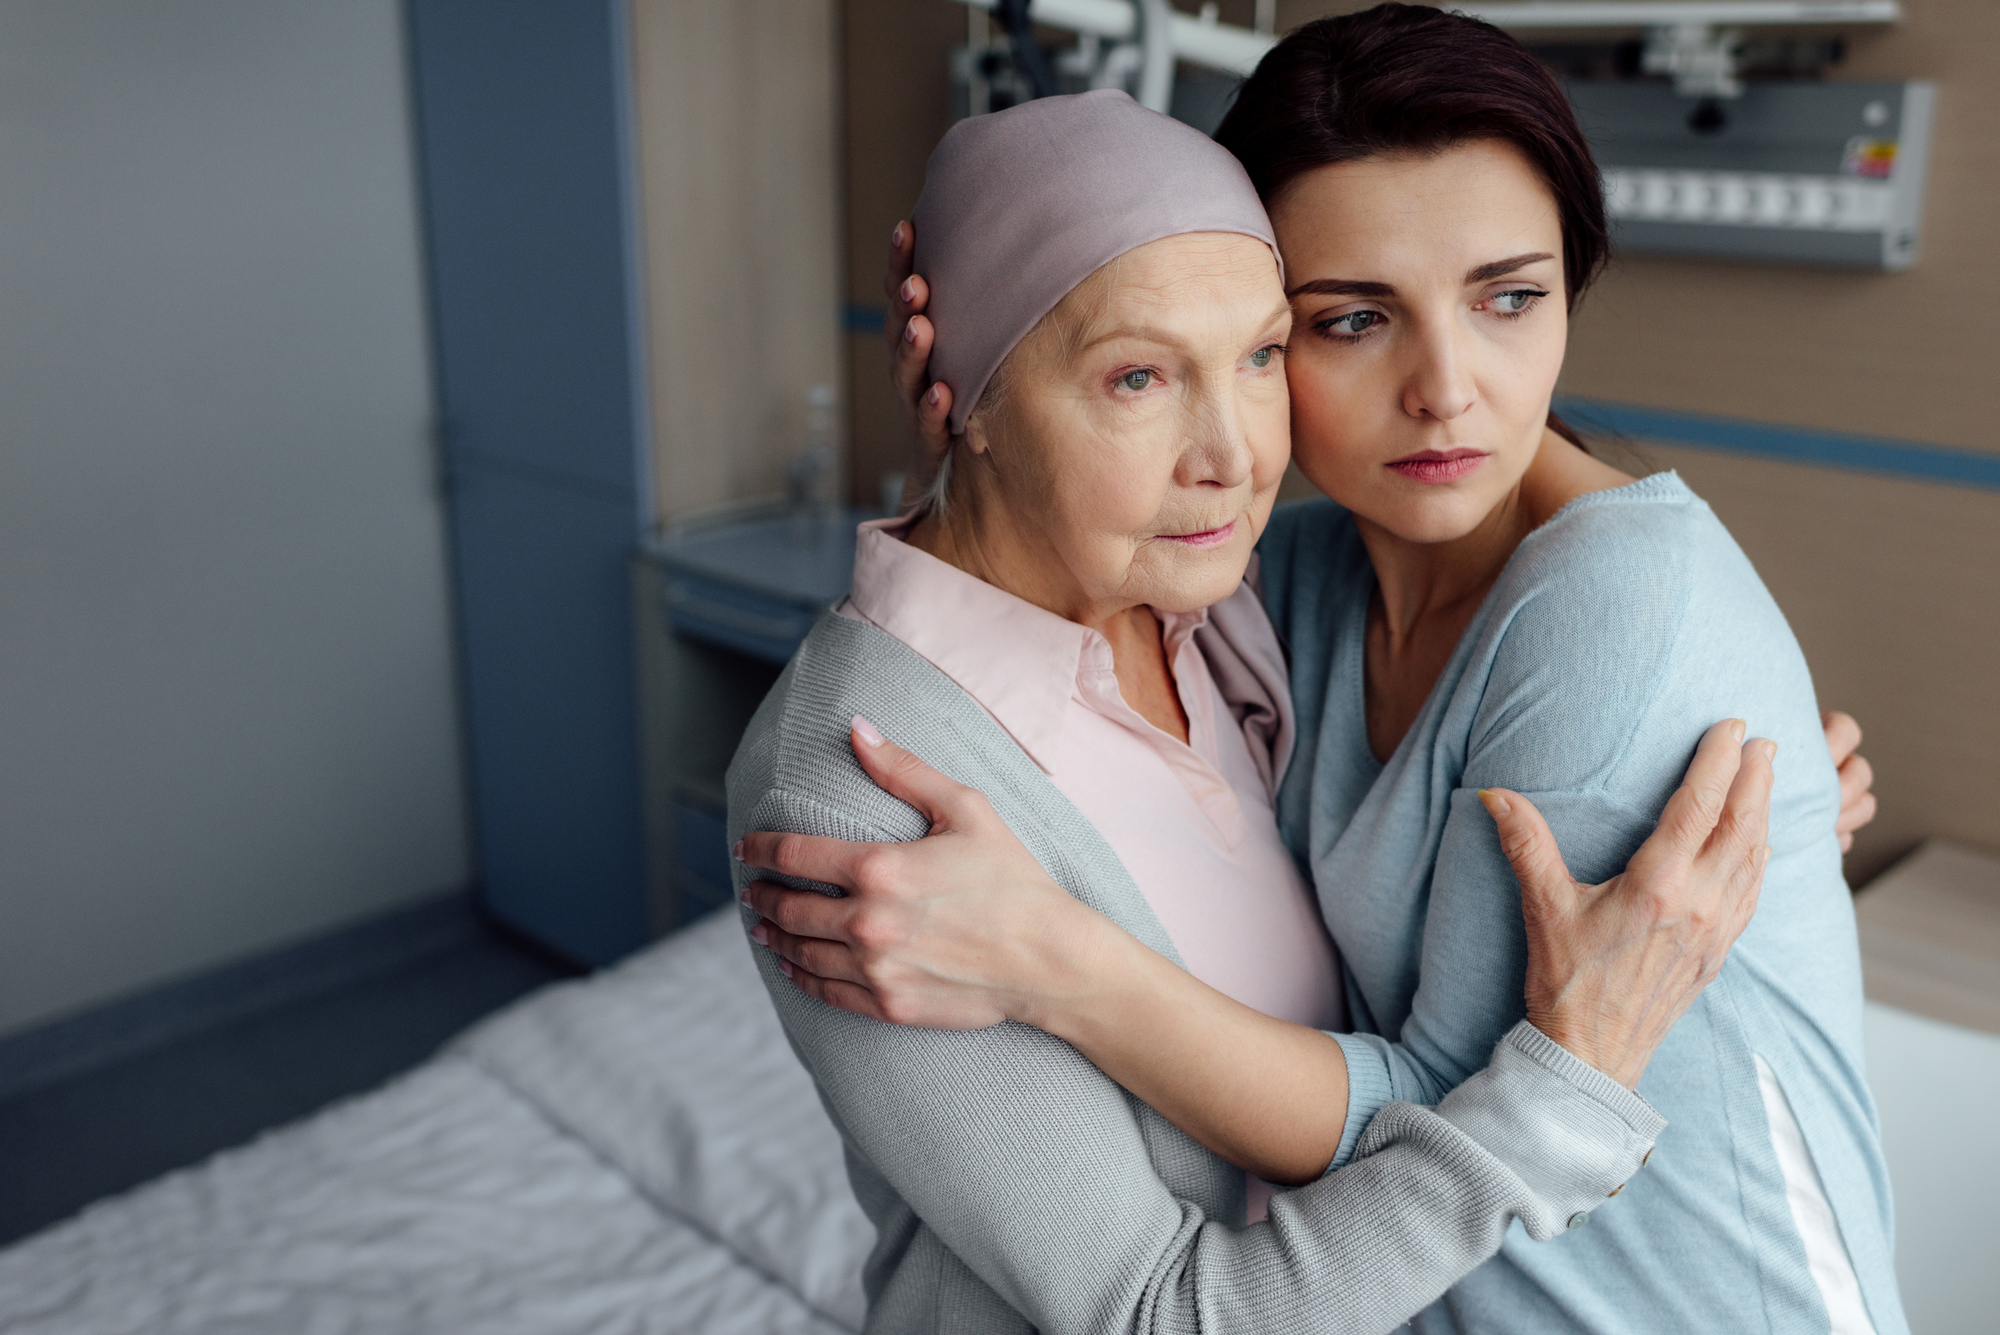 5 Things Cancer Patients Are Afraid Of